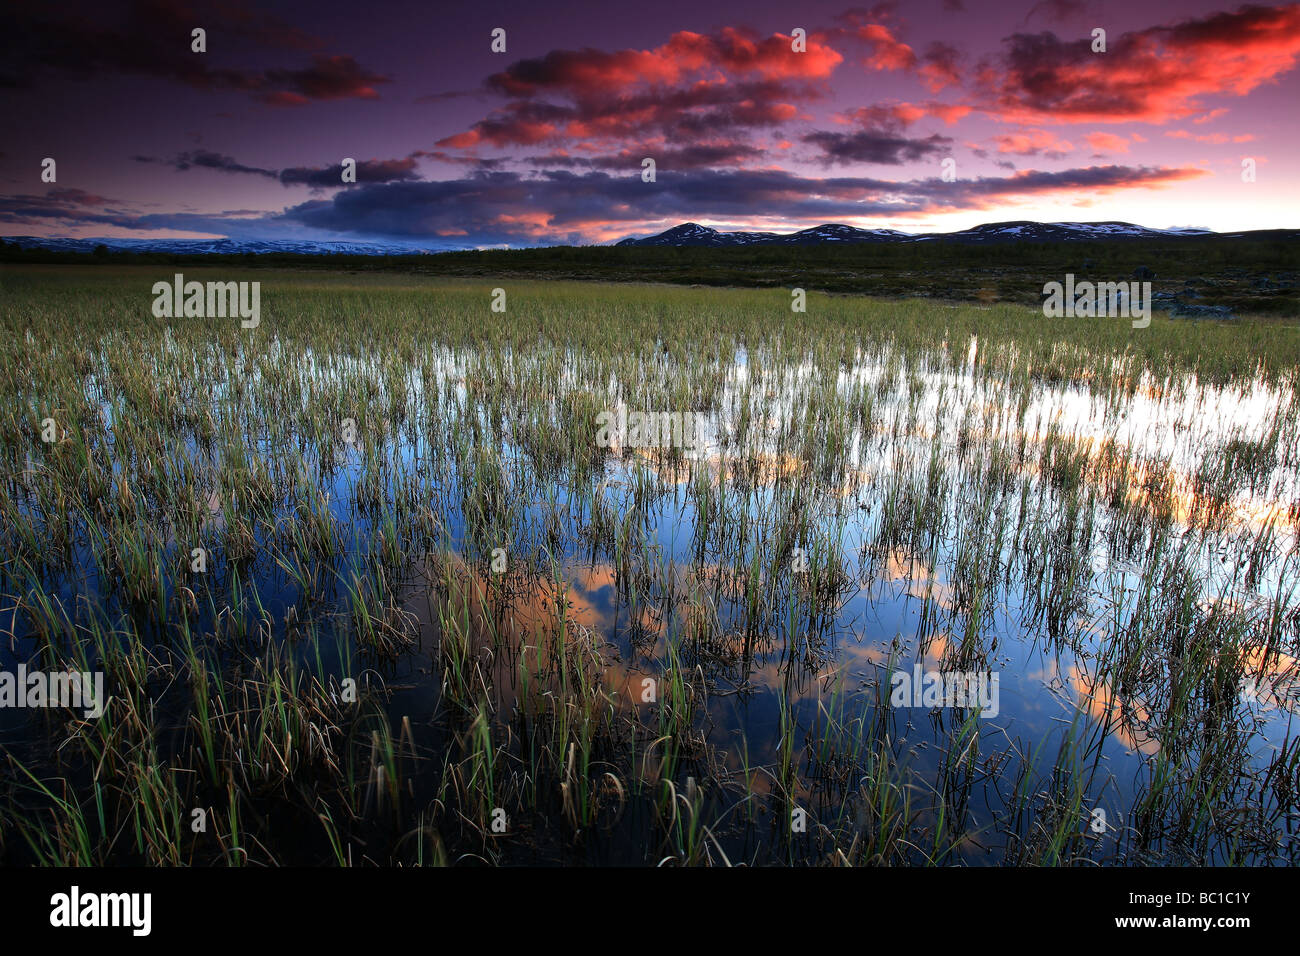 Evening colours at Fokstumyra nature reserve at Dovrefjell, Dovre kommune, Norway. - Stock Image